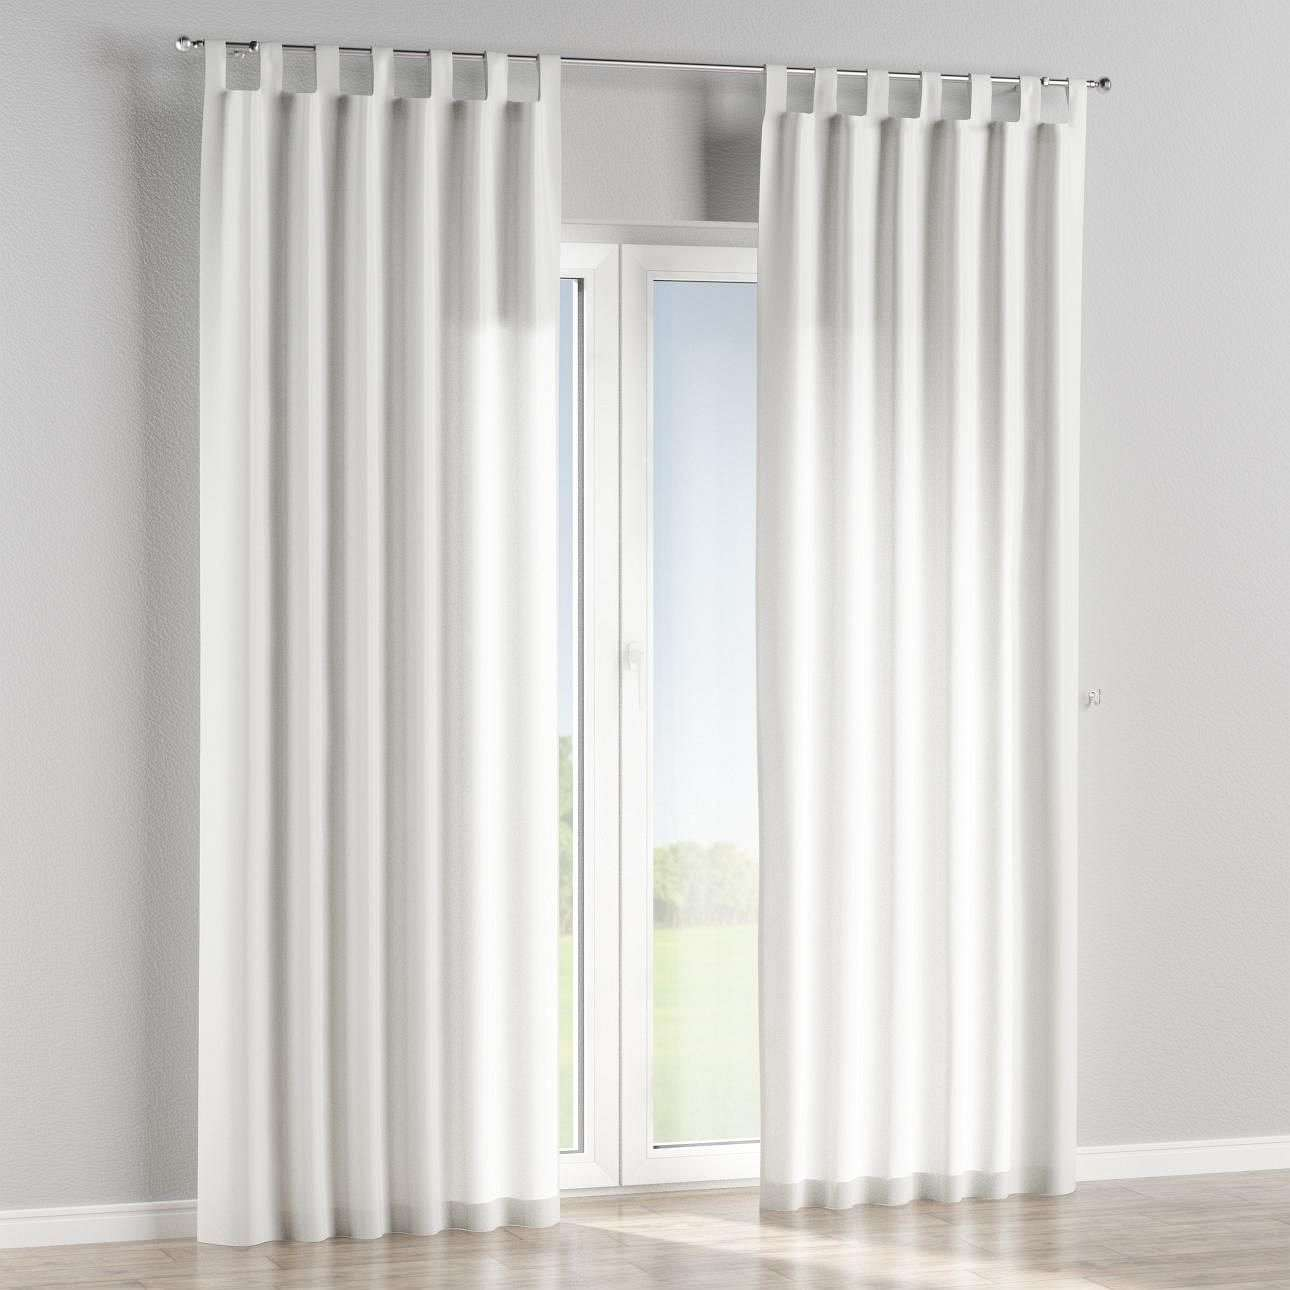 Tab top curtains in collection Ashley, fabric: 137-43